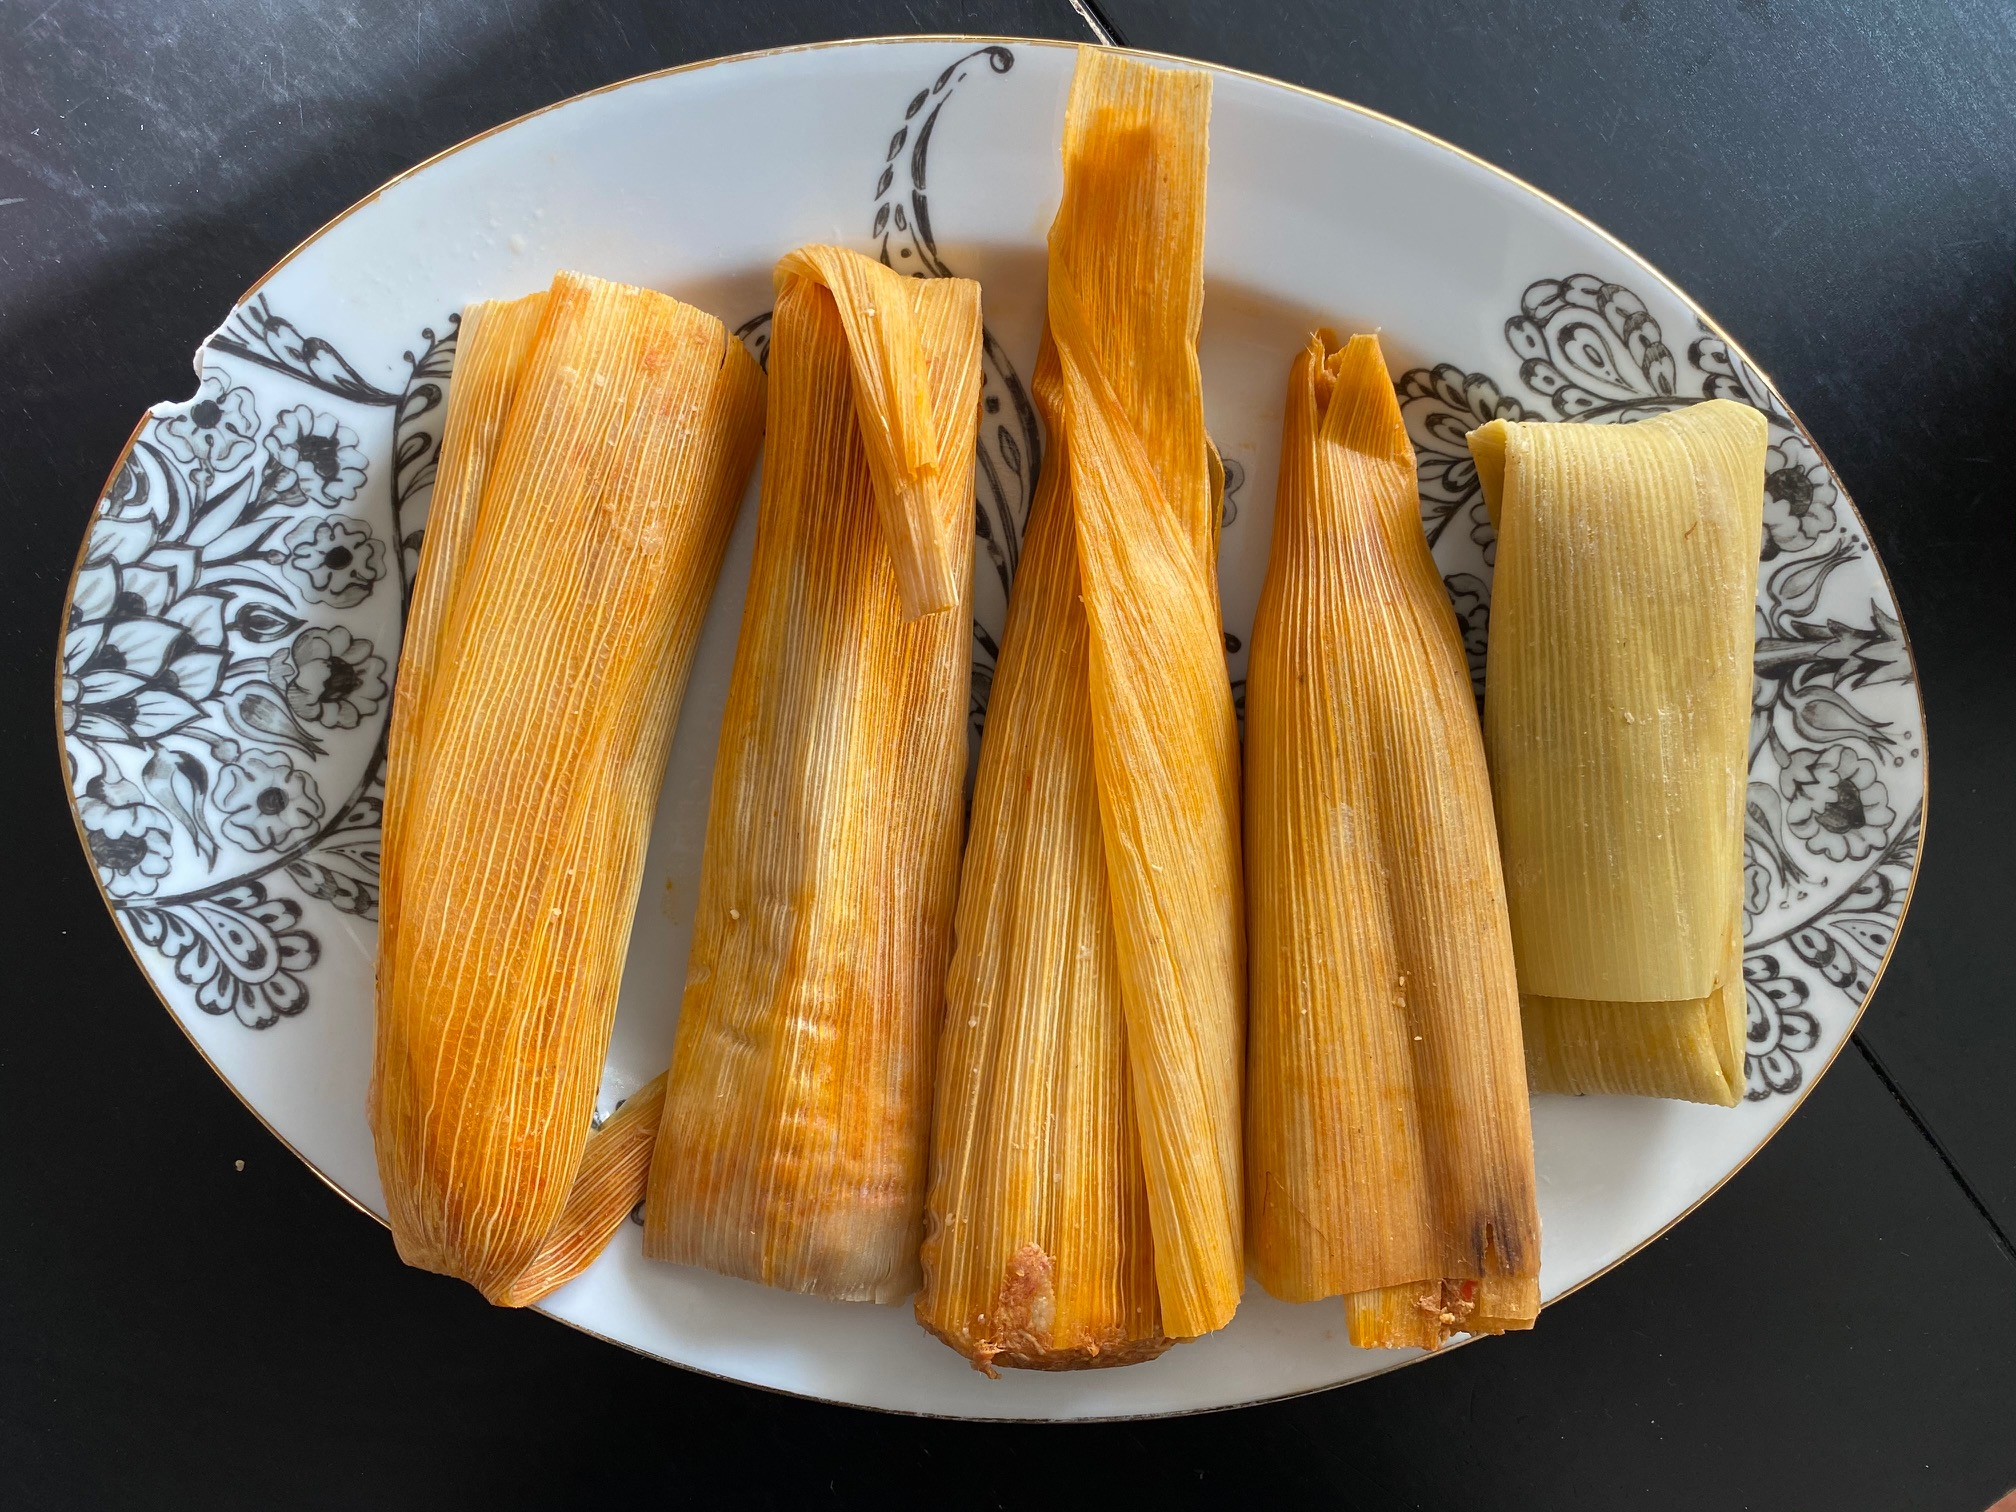 Five corn husk-wrapped tamales from Tamaleria Azteca on a ceramic platter